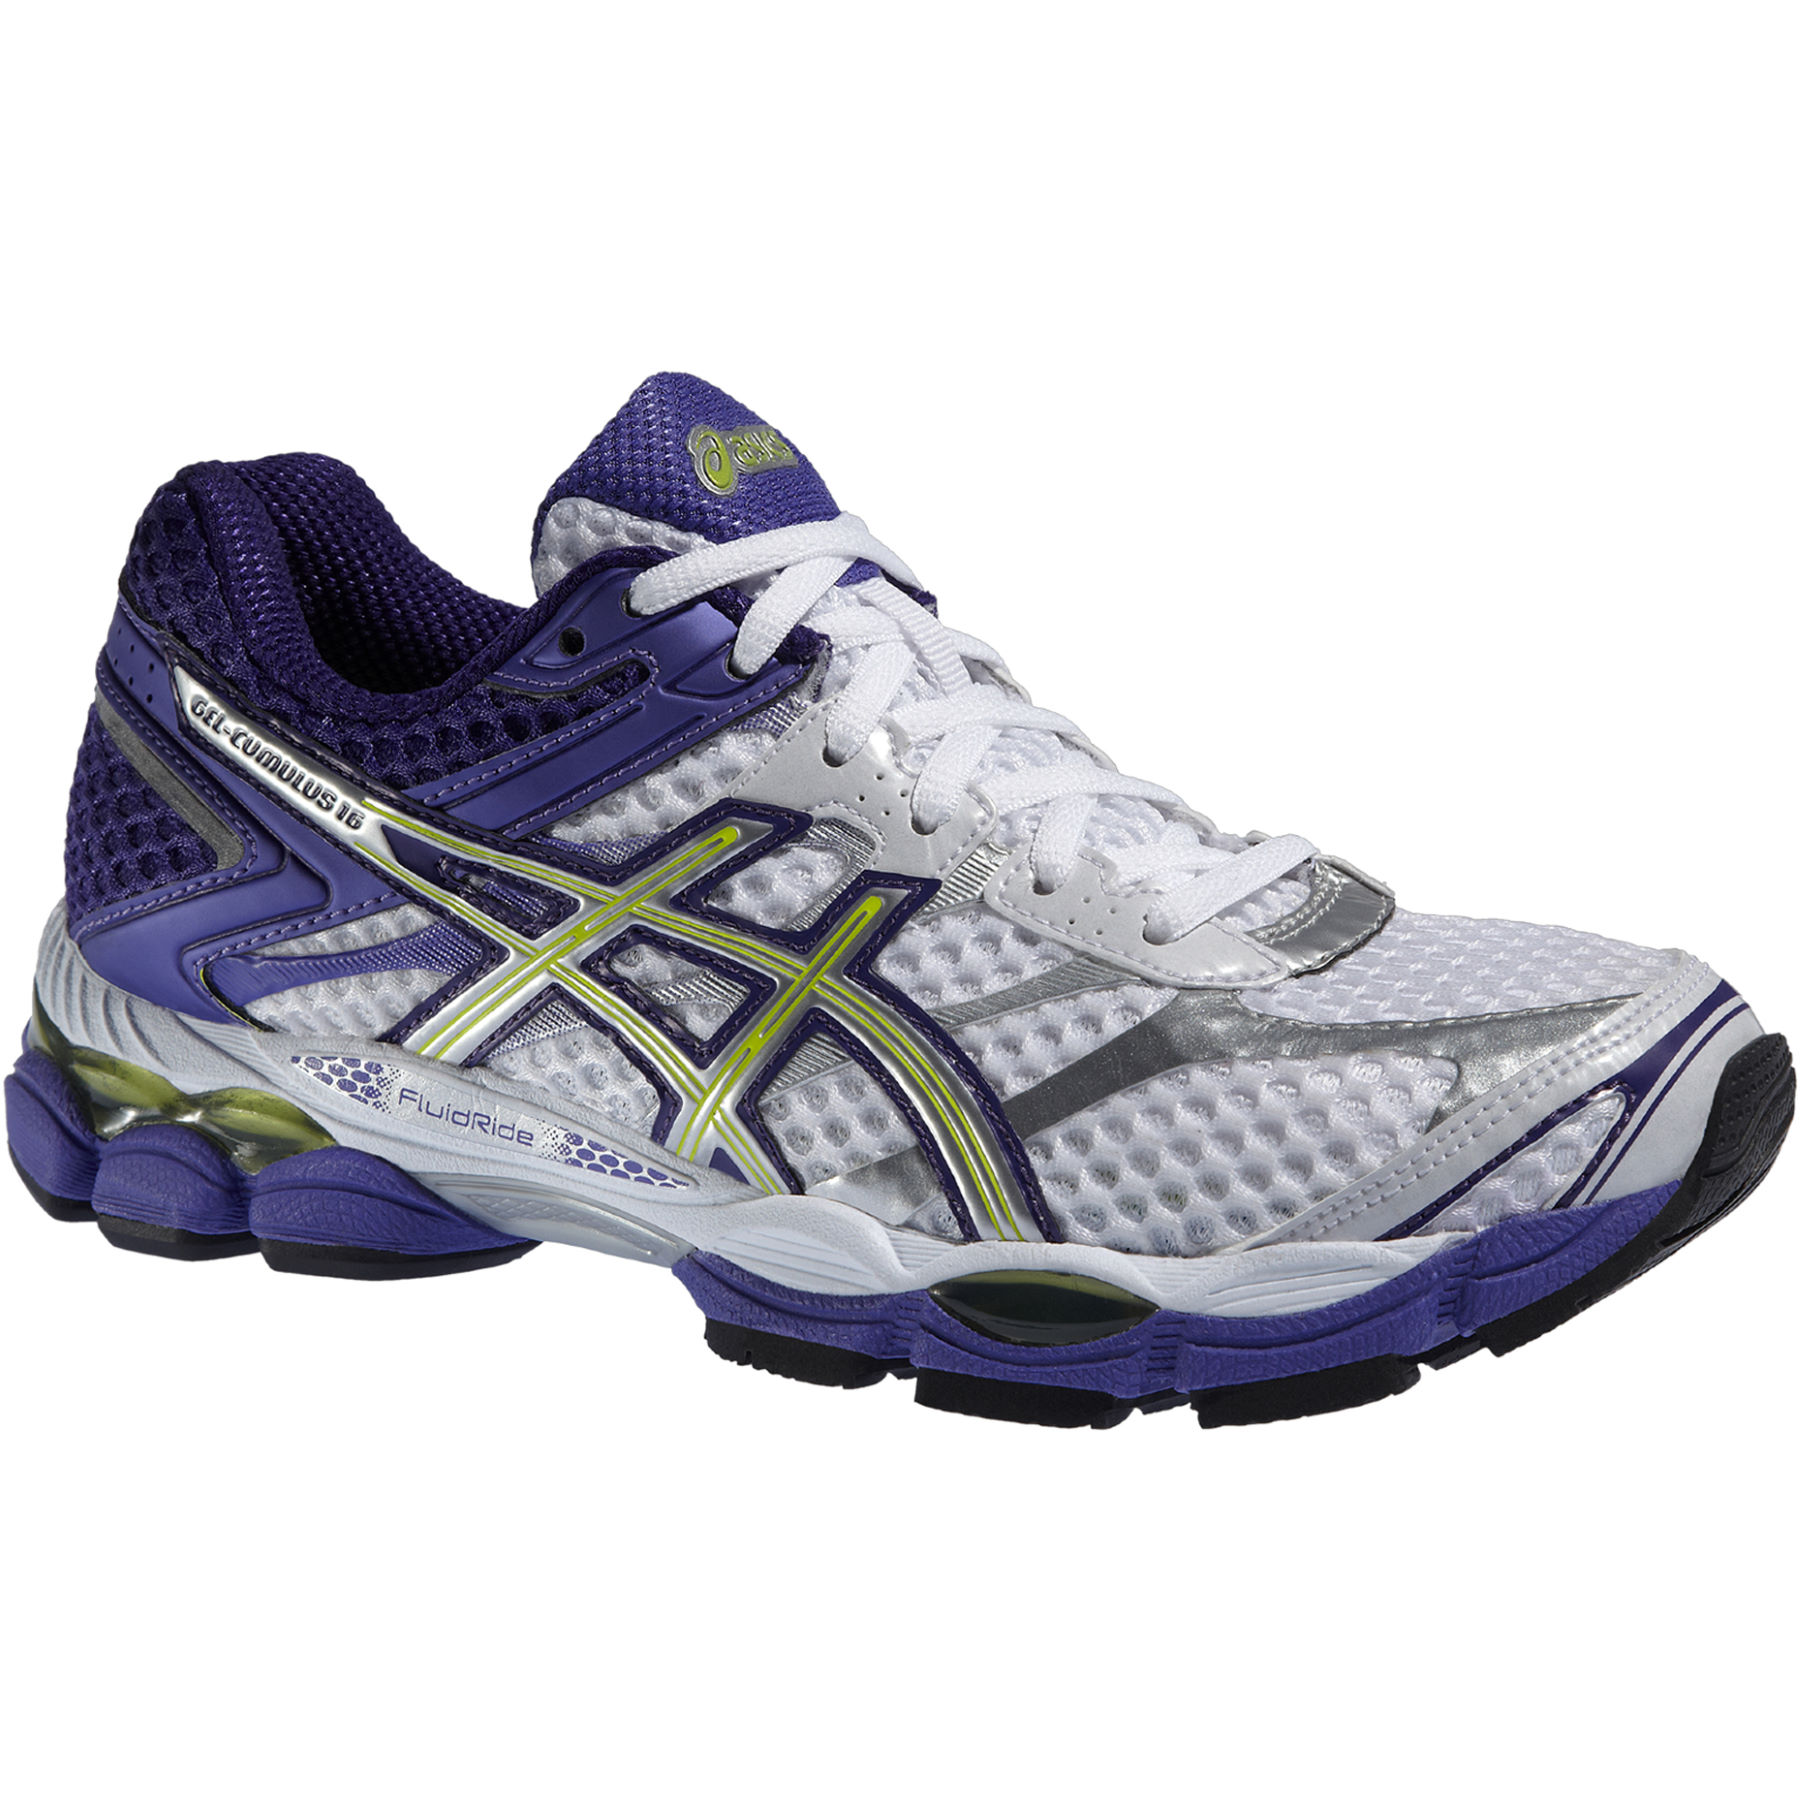 chaussures de running amorties asics women 39 s gel cumulus 16 shoes aw14 wiggle france. Black Bedroom Furniture Sets. Home Design Ideas